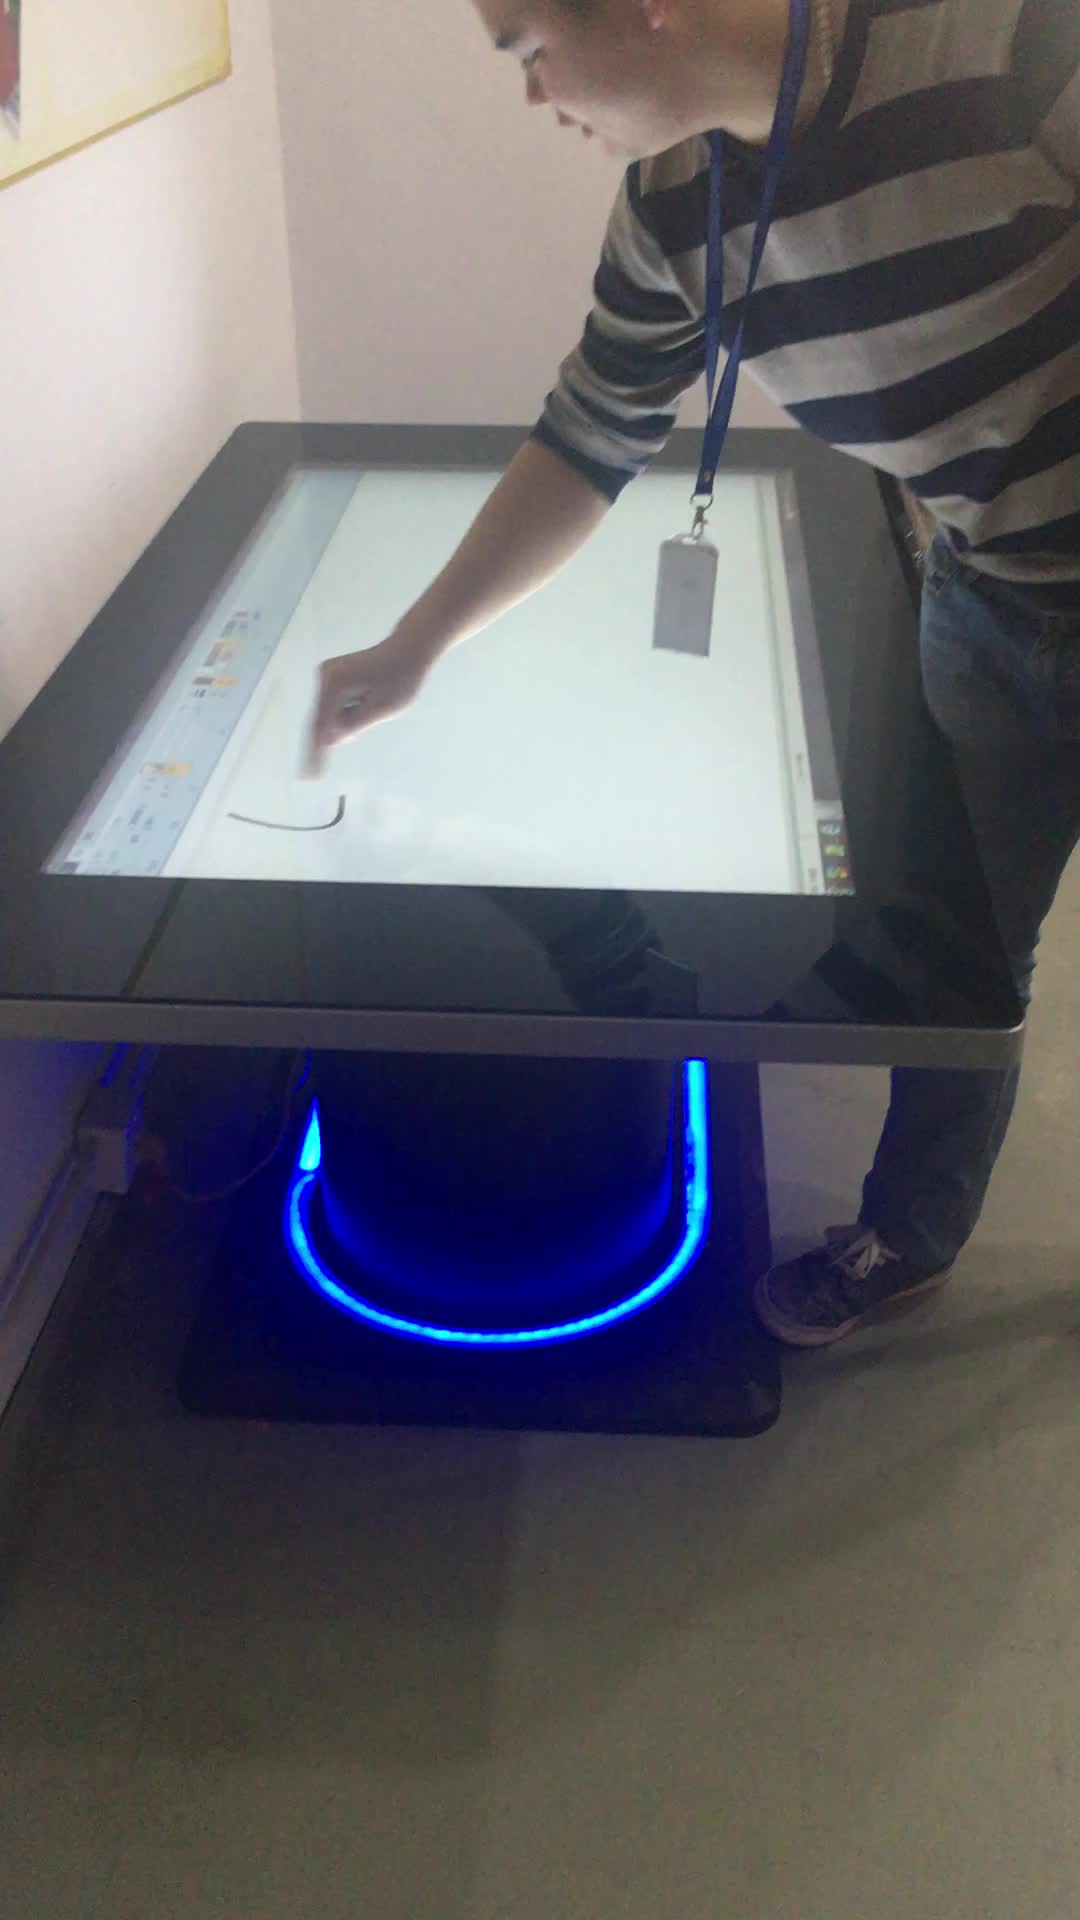 55 42 inch floor standing android outdoor touch screen kiosk for bar table,game table